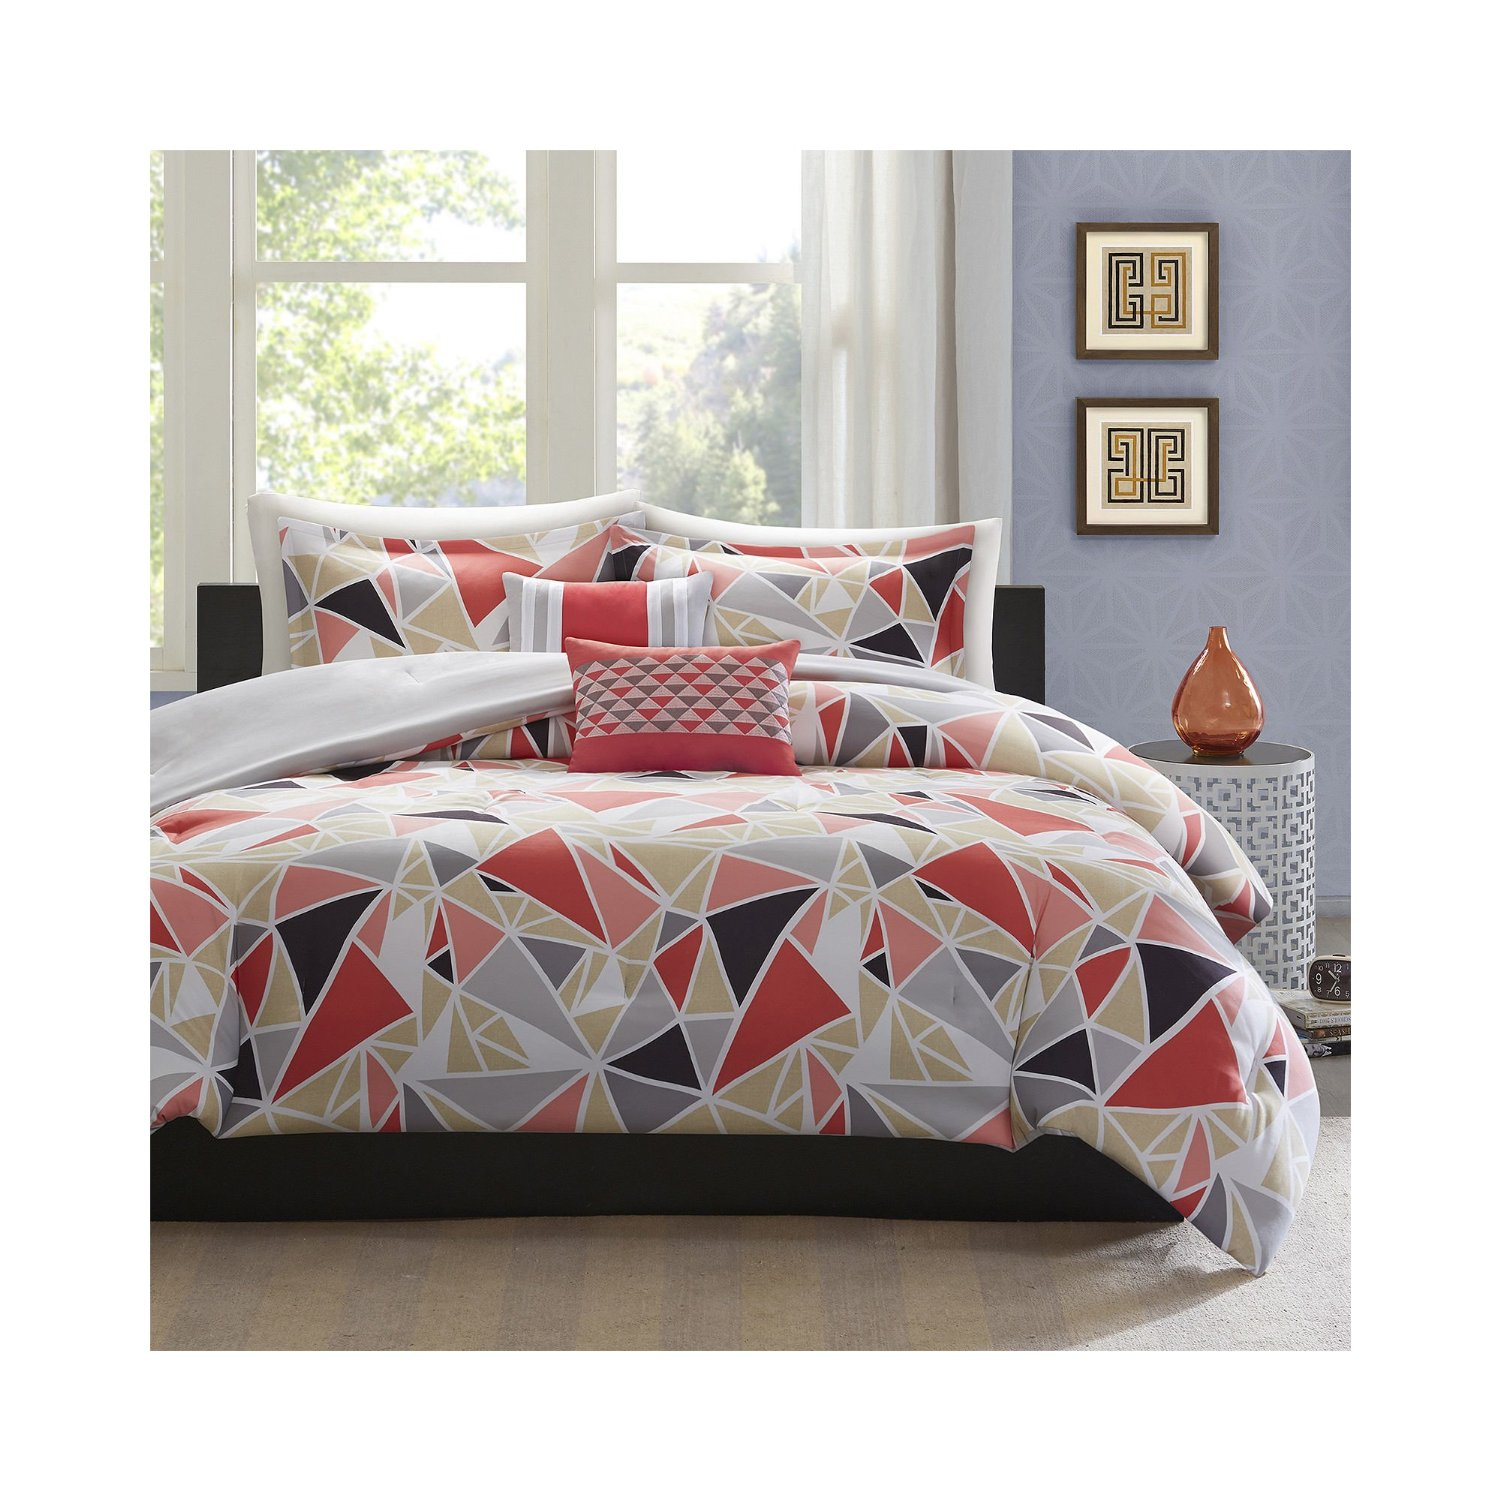 geometric bedding best  geometric bedding ideas that you will  - total fab peach colored comforters bedding sets